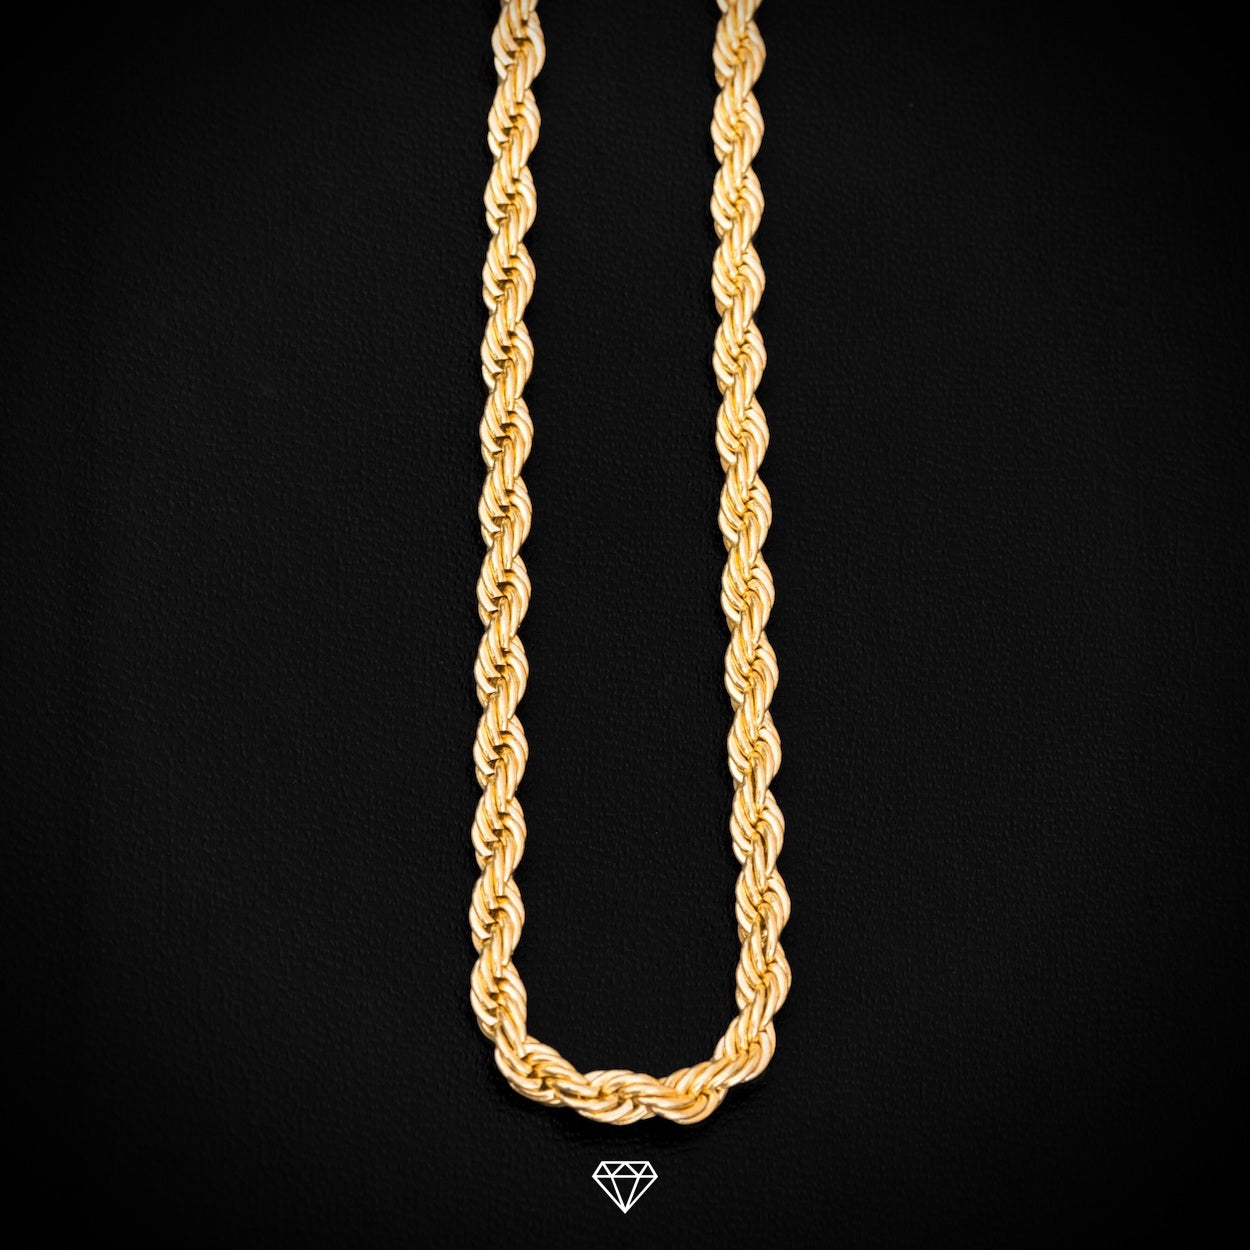 GCS Yellow Gold Rope Chain 4mm